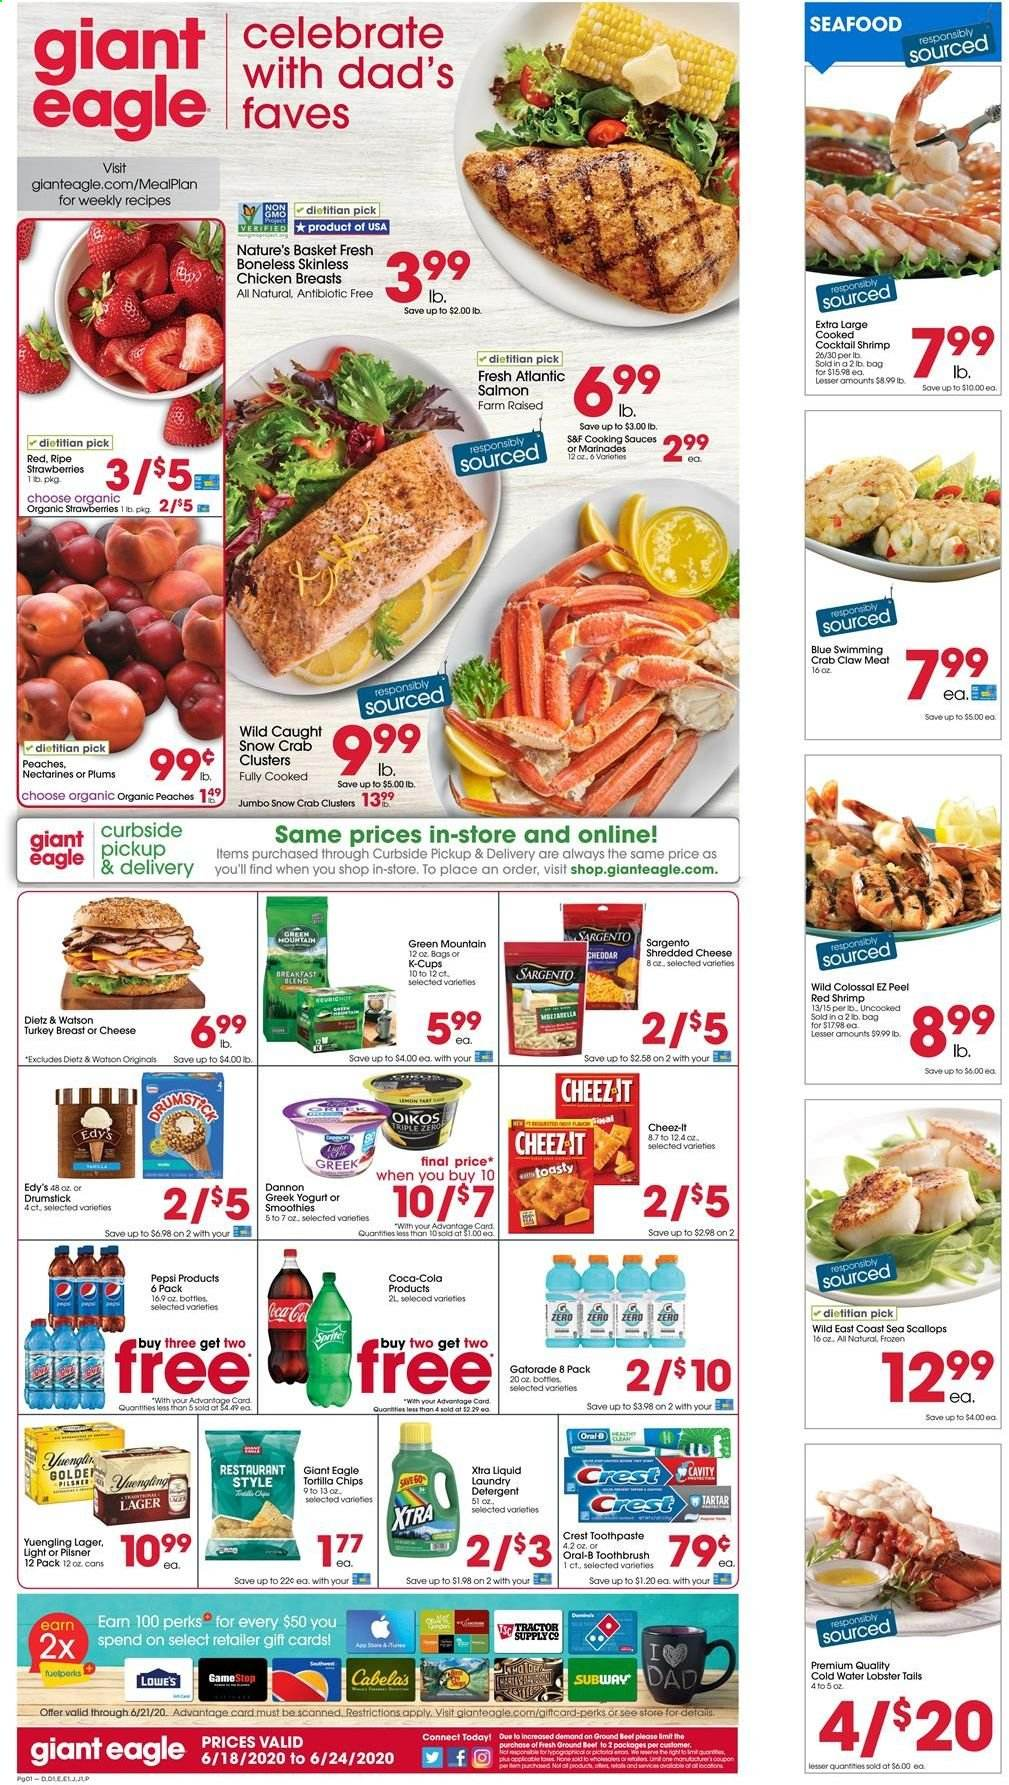 Giant Eagle Flyer  - 06.18.2020 - 06.24.2020. Page 1.